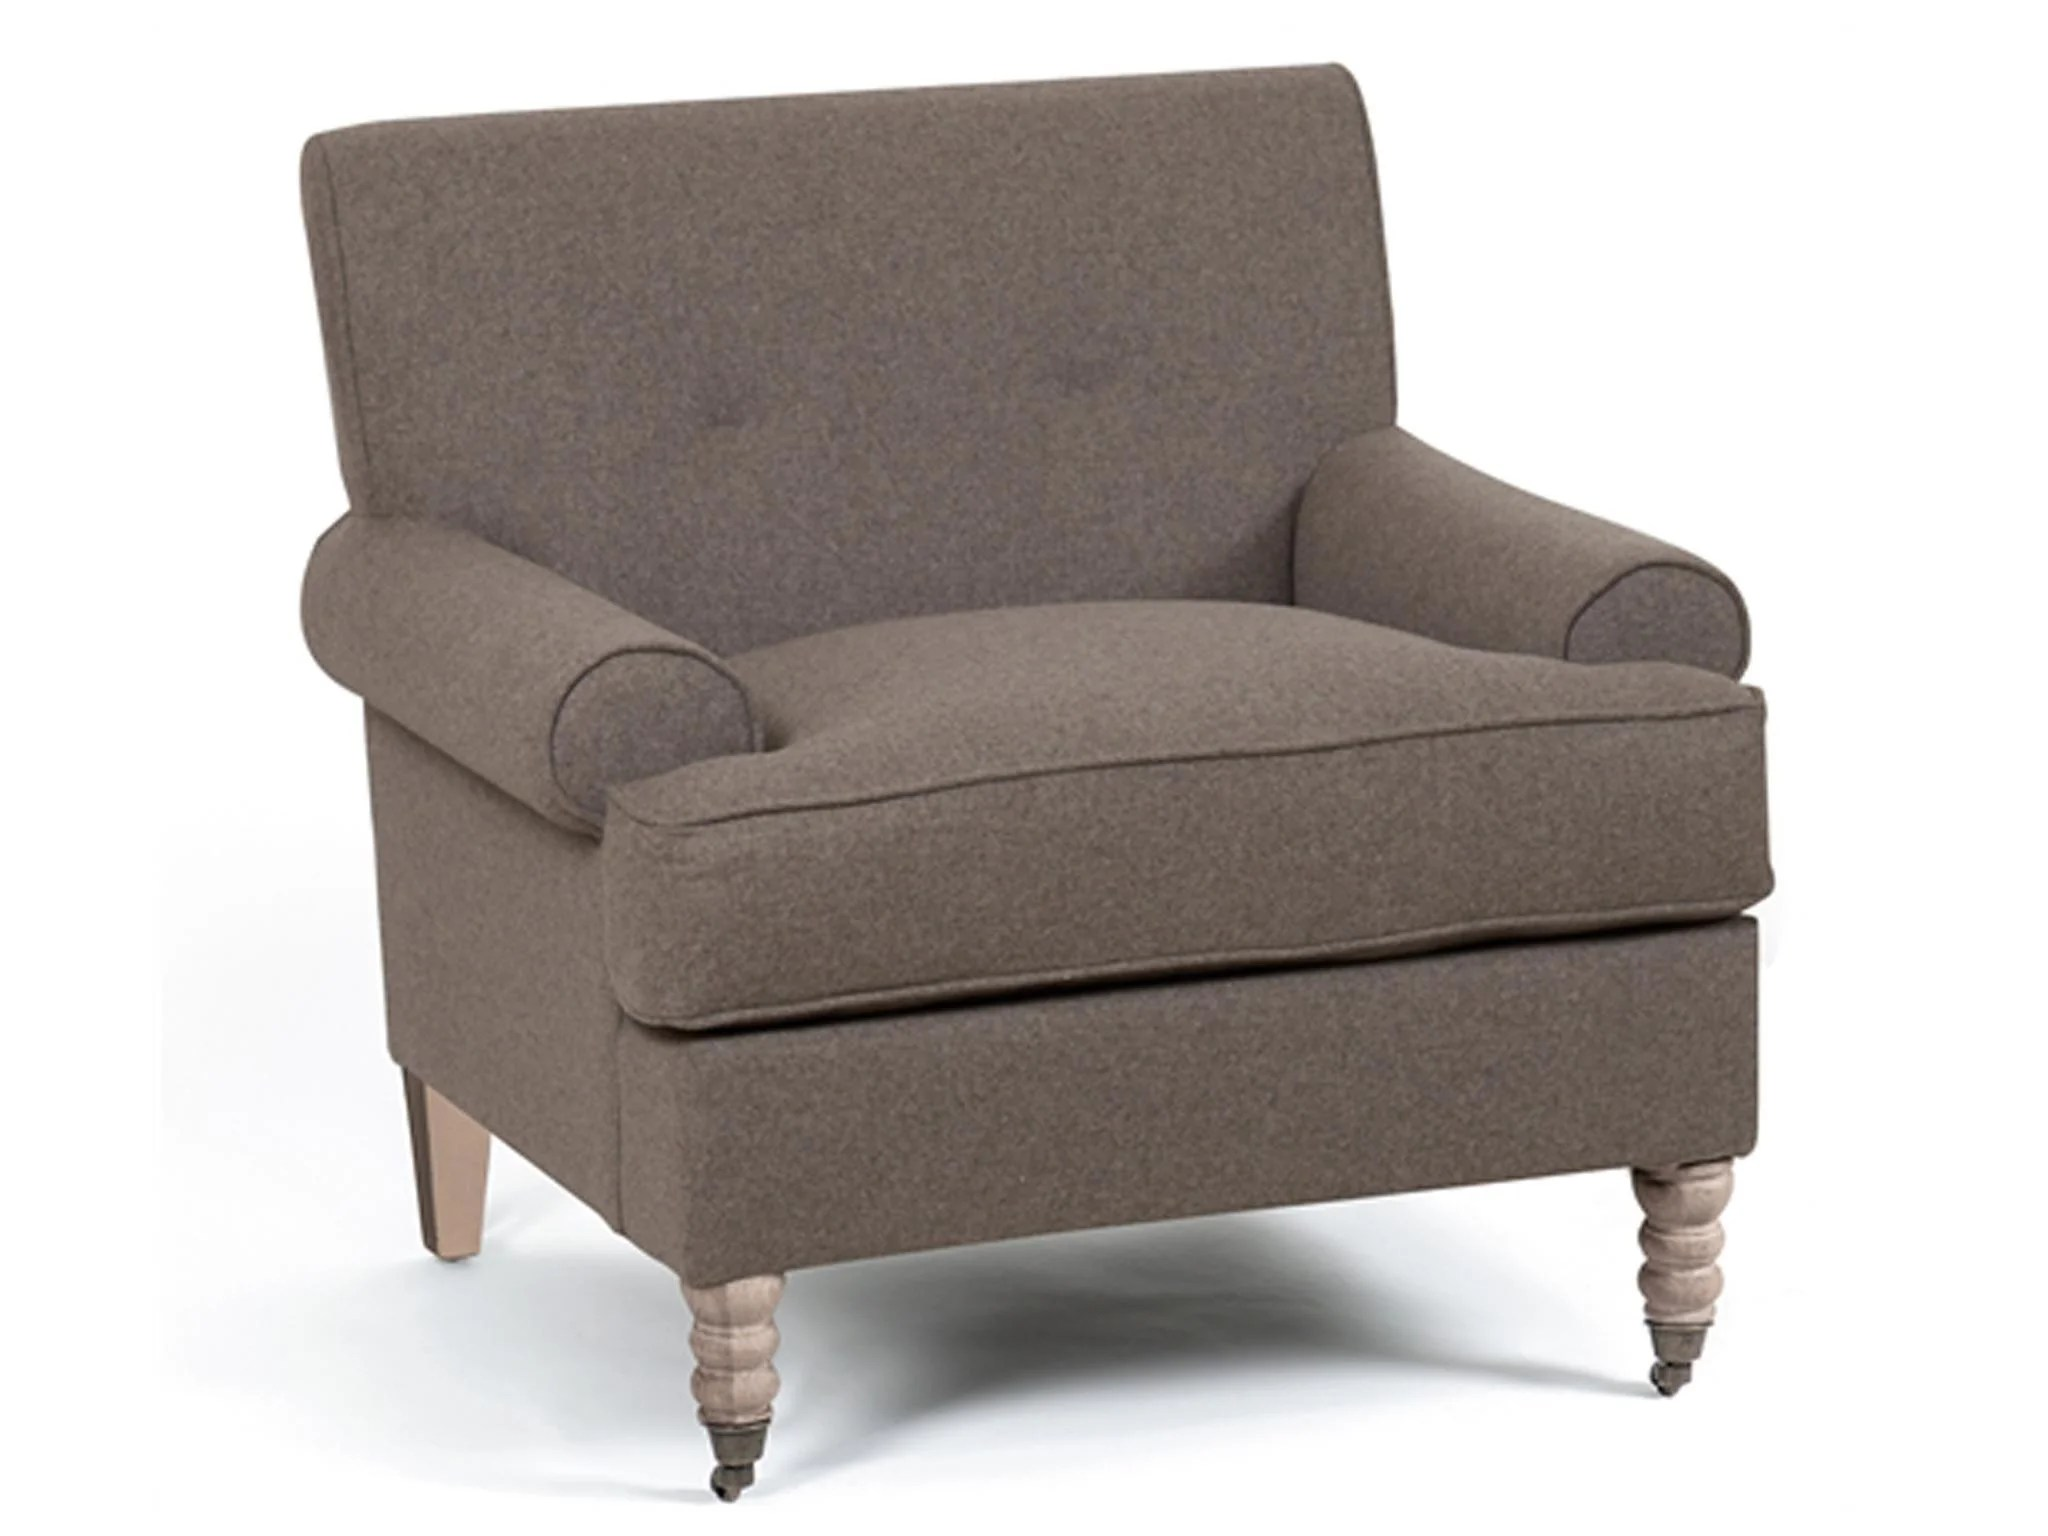 Designer Chairs Used 10 Best Armchairs The Independent